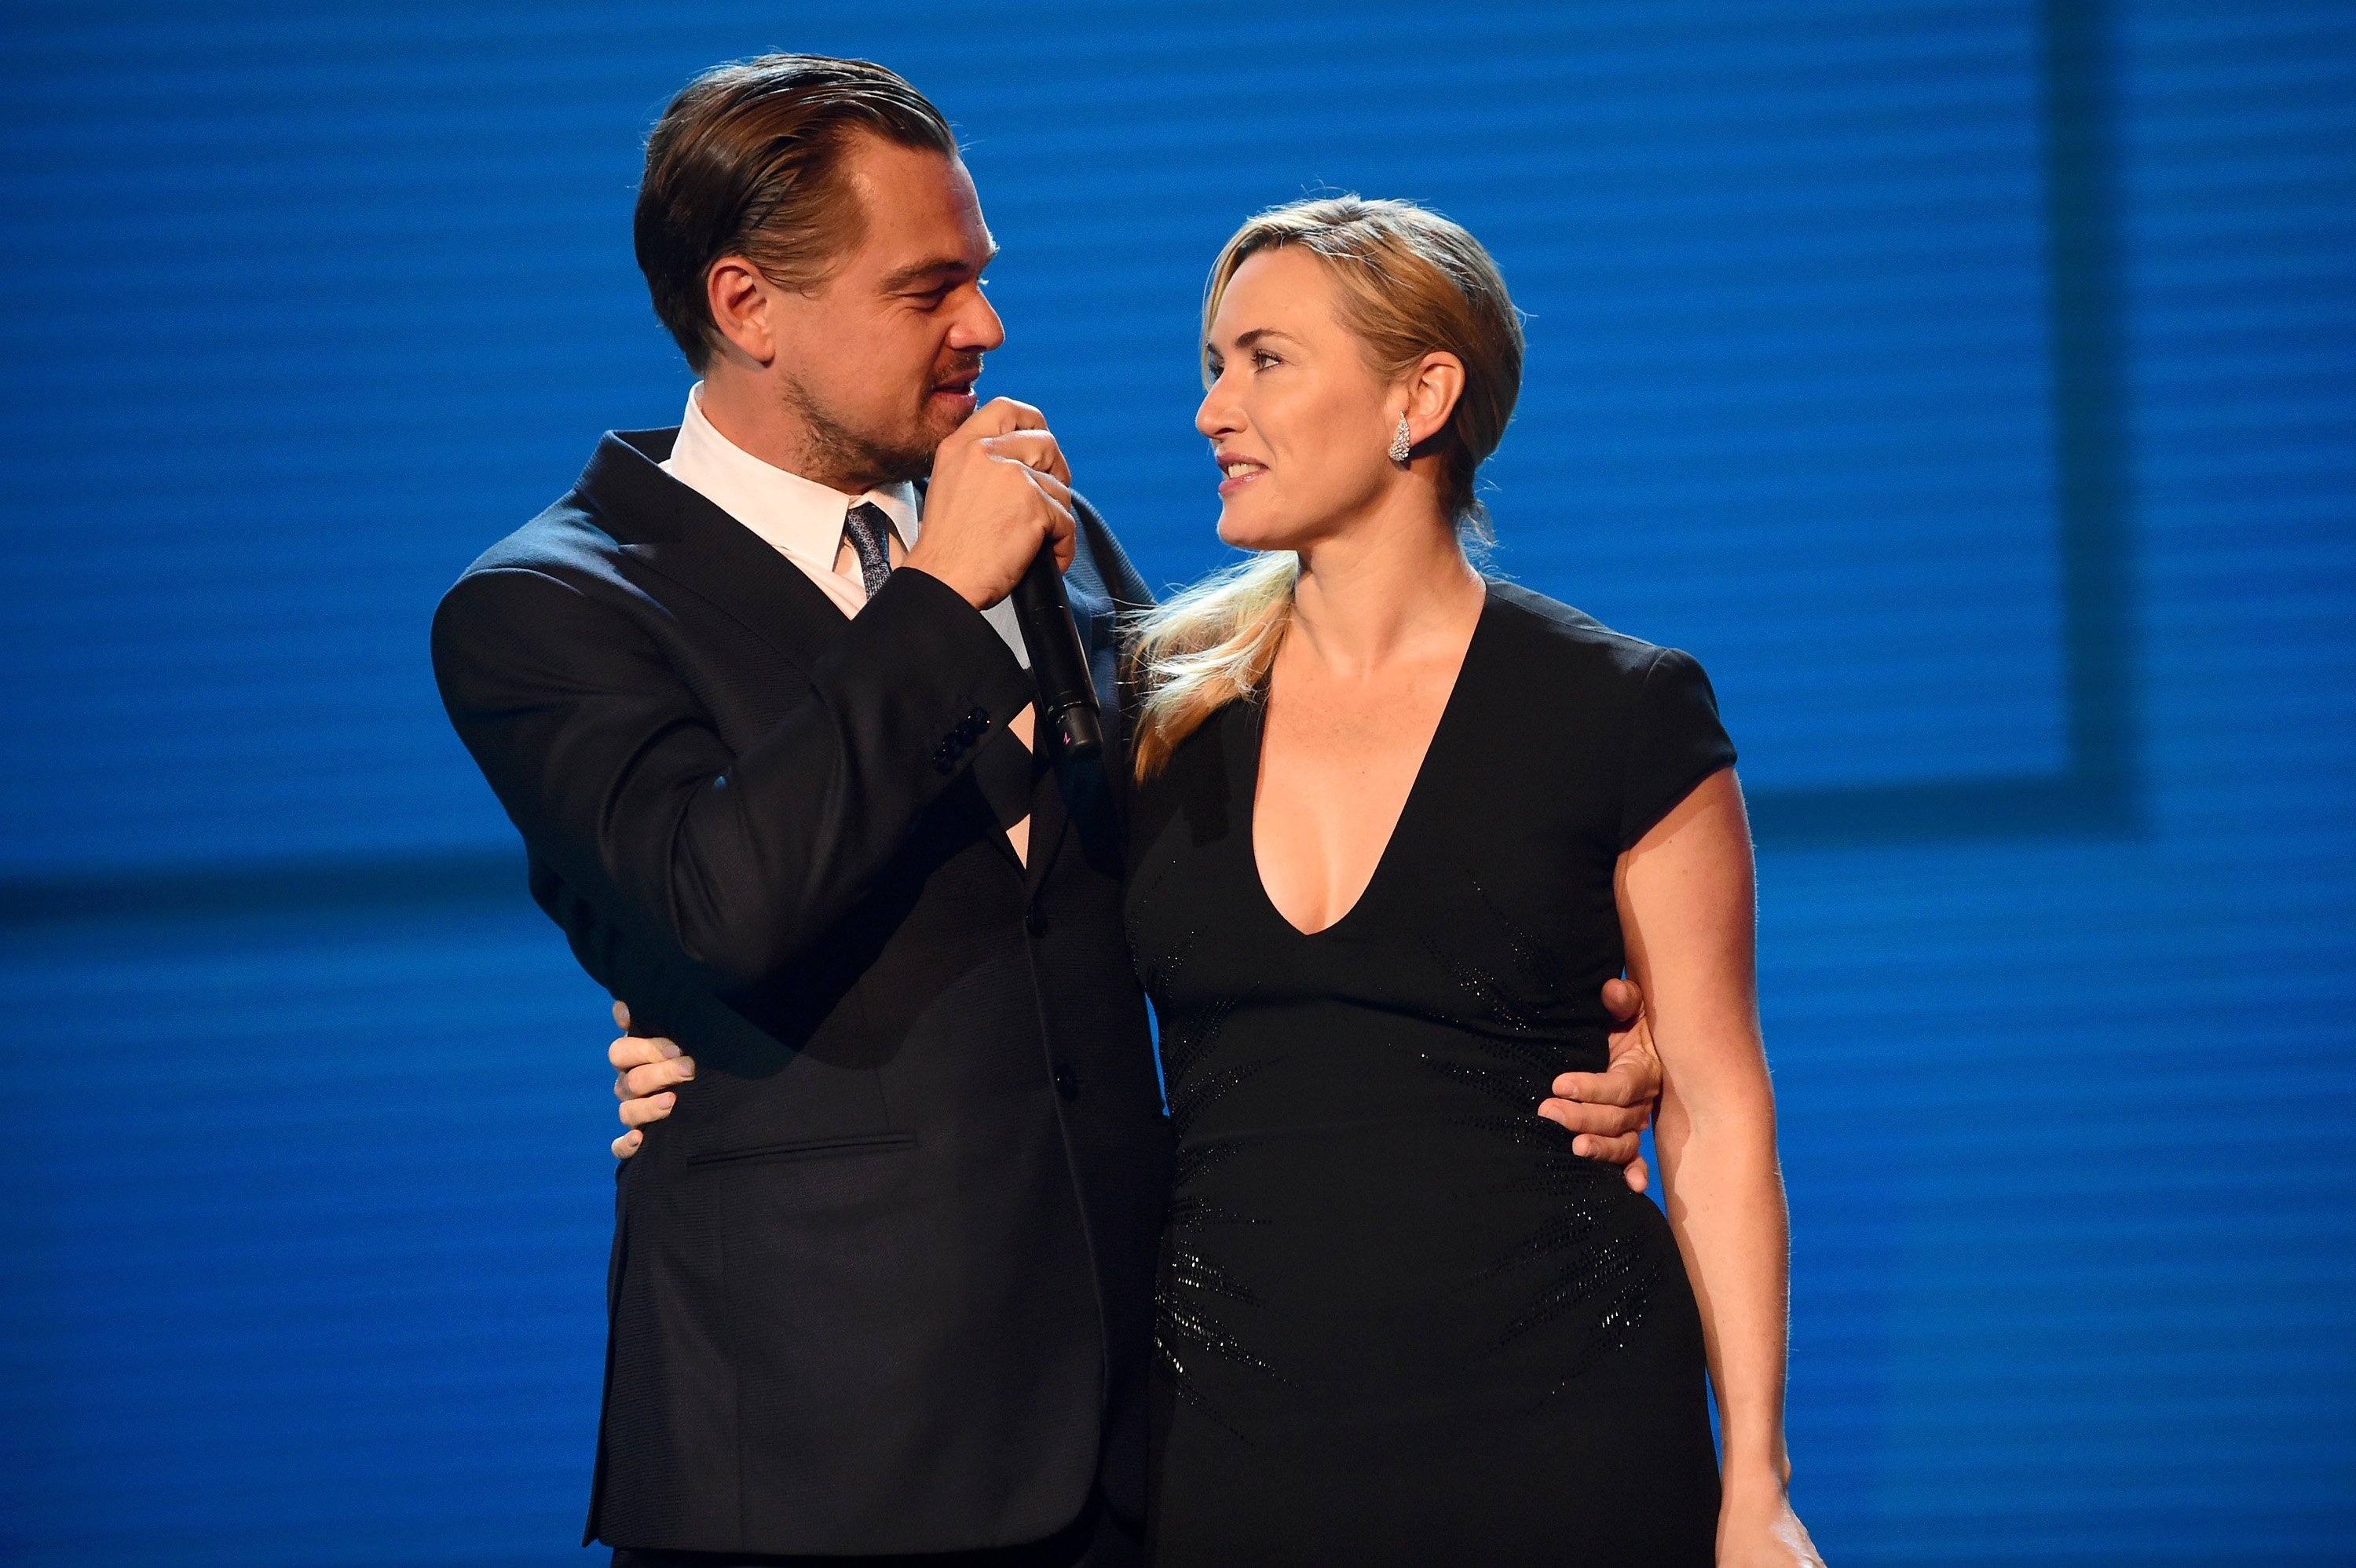 Image Source: Getty Images| Leo with Kate in an event